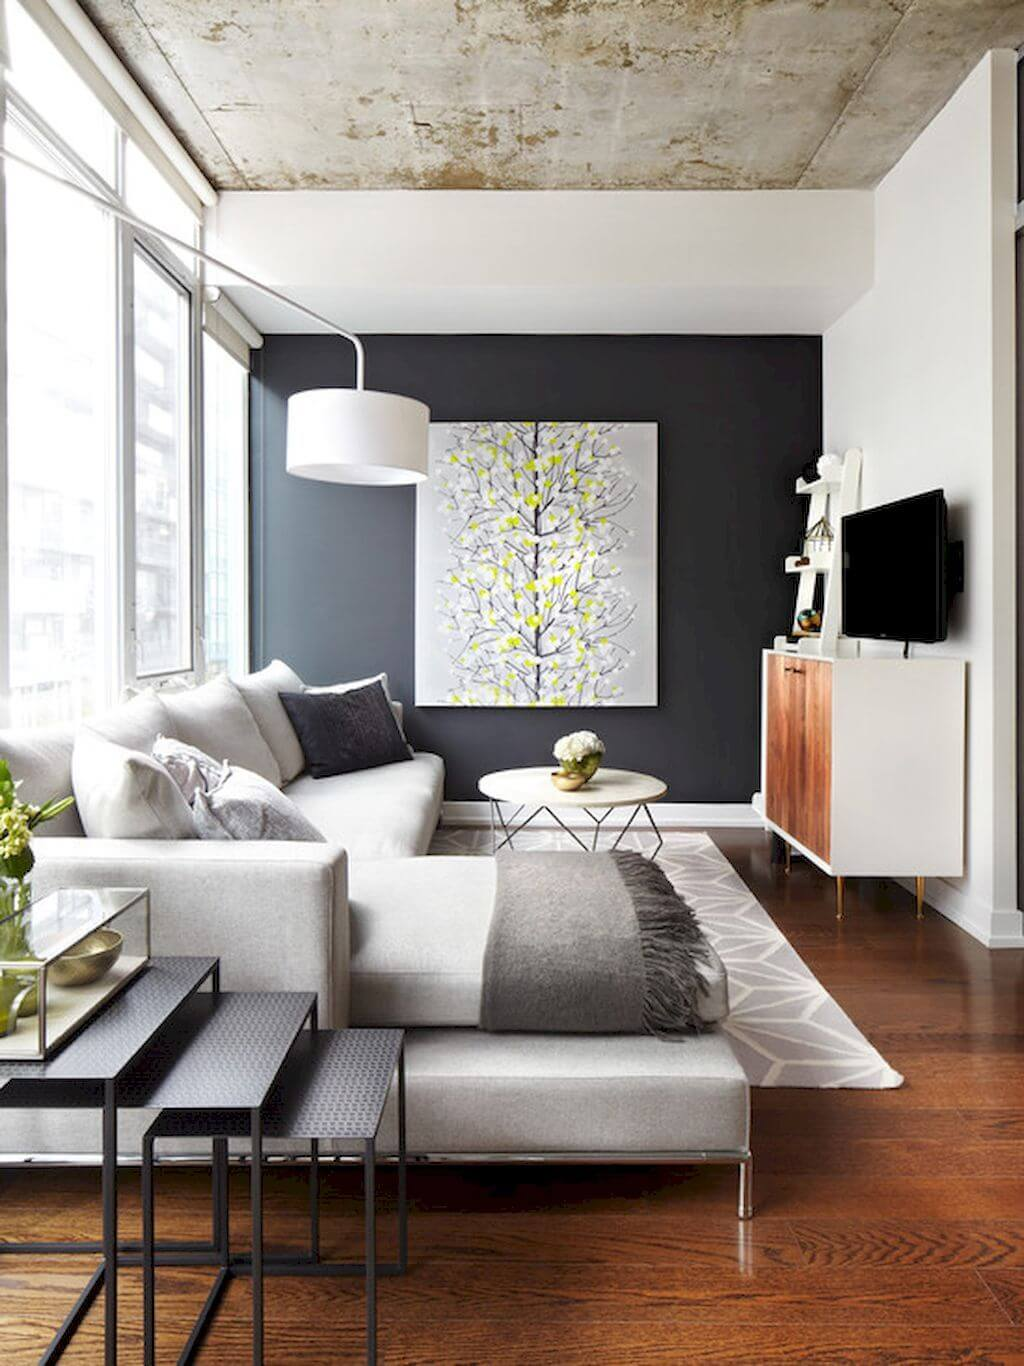 how to furnish small living room decorating ideas orange accents 25 best decor and design for 2019 contemporary with wall art